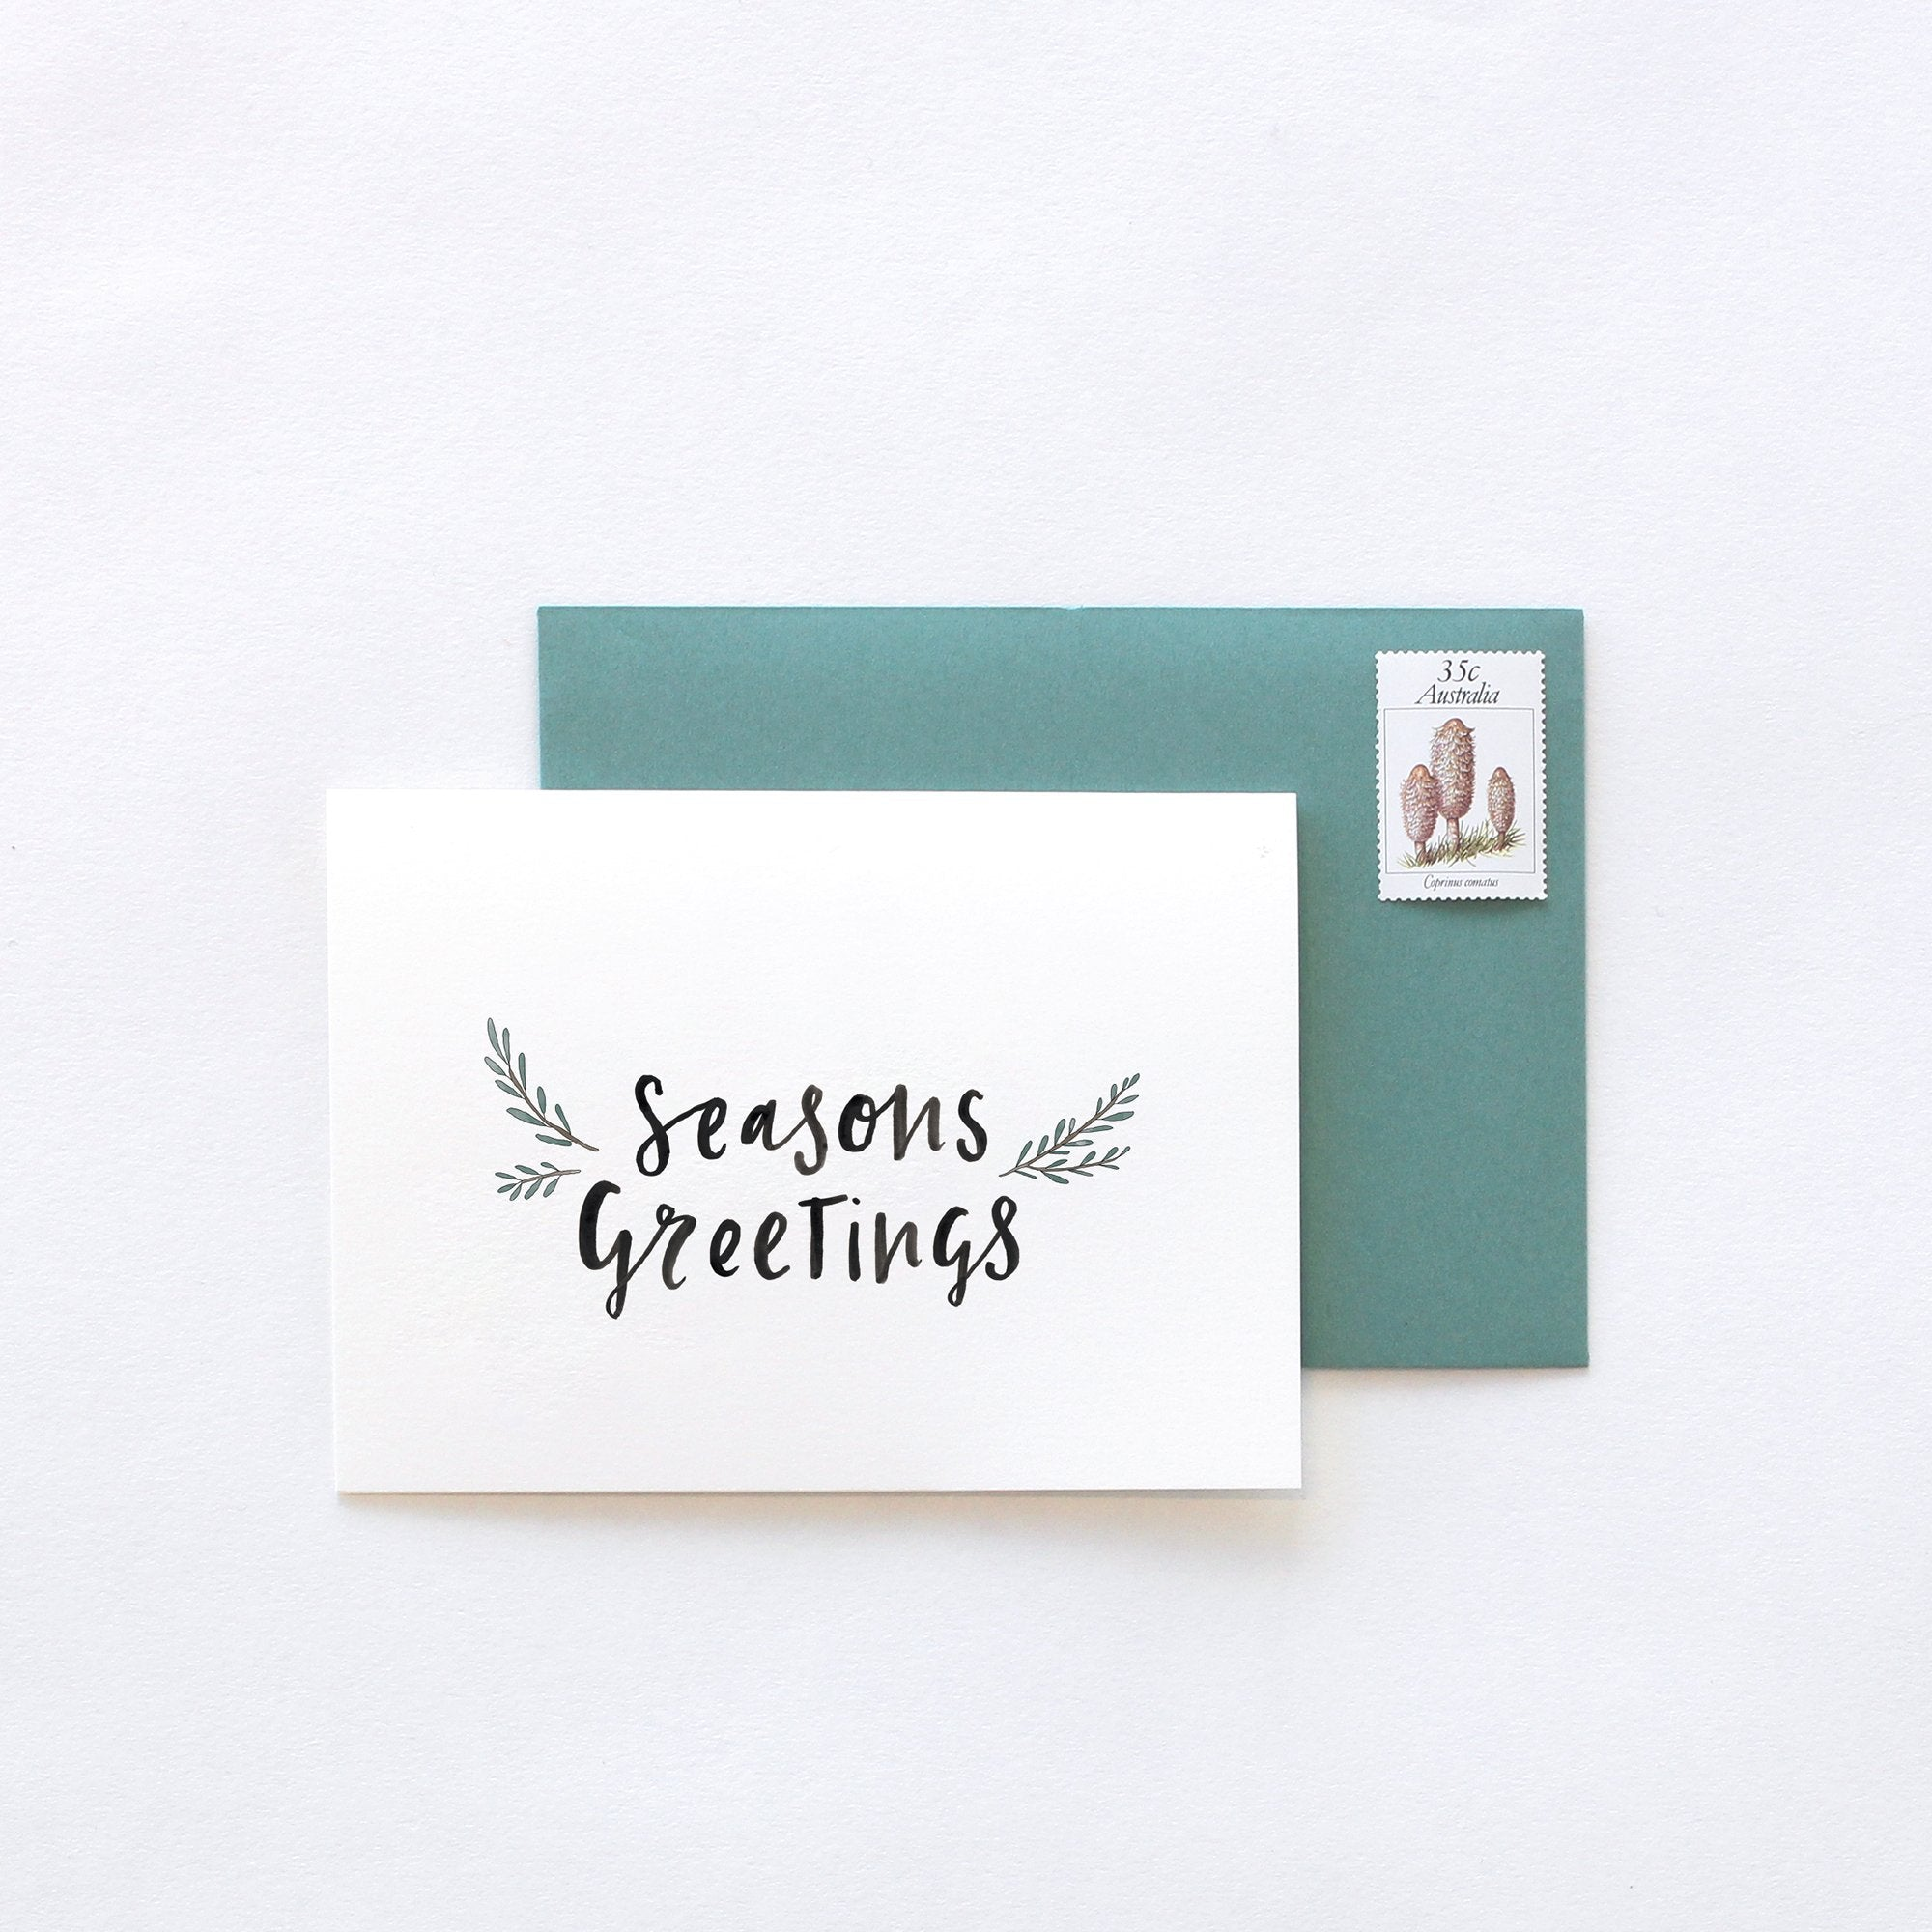 IN THE DAYLIGHT - SEASONS GREETINGS CHRISTMAS - GREETING CARD - Tempted Kensington